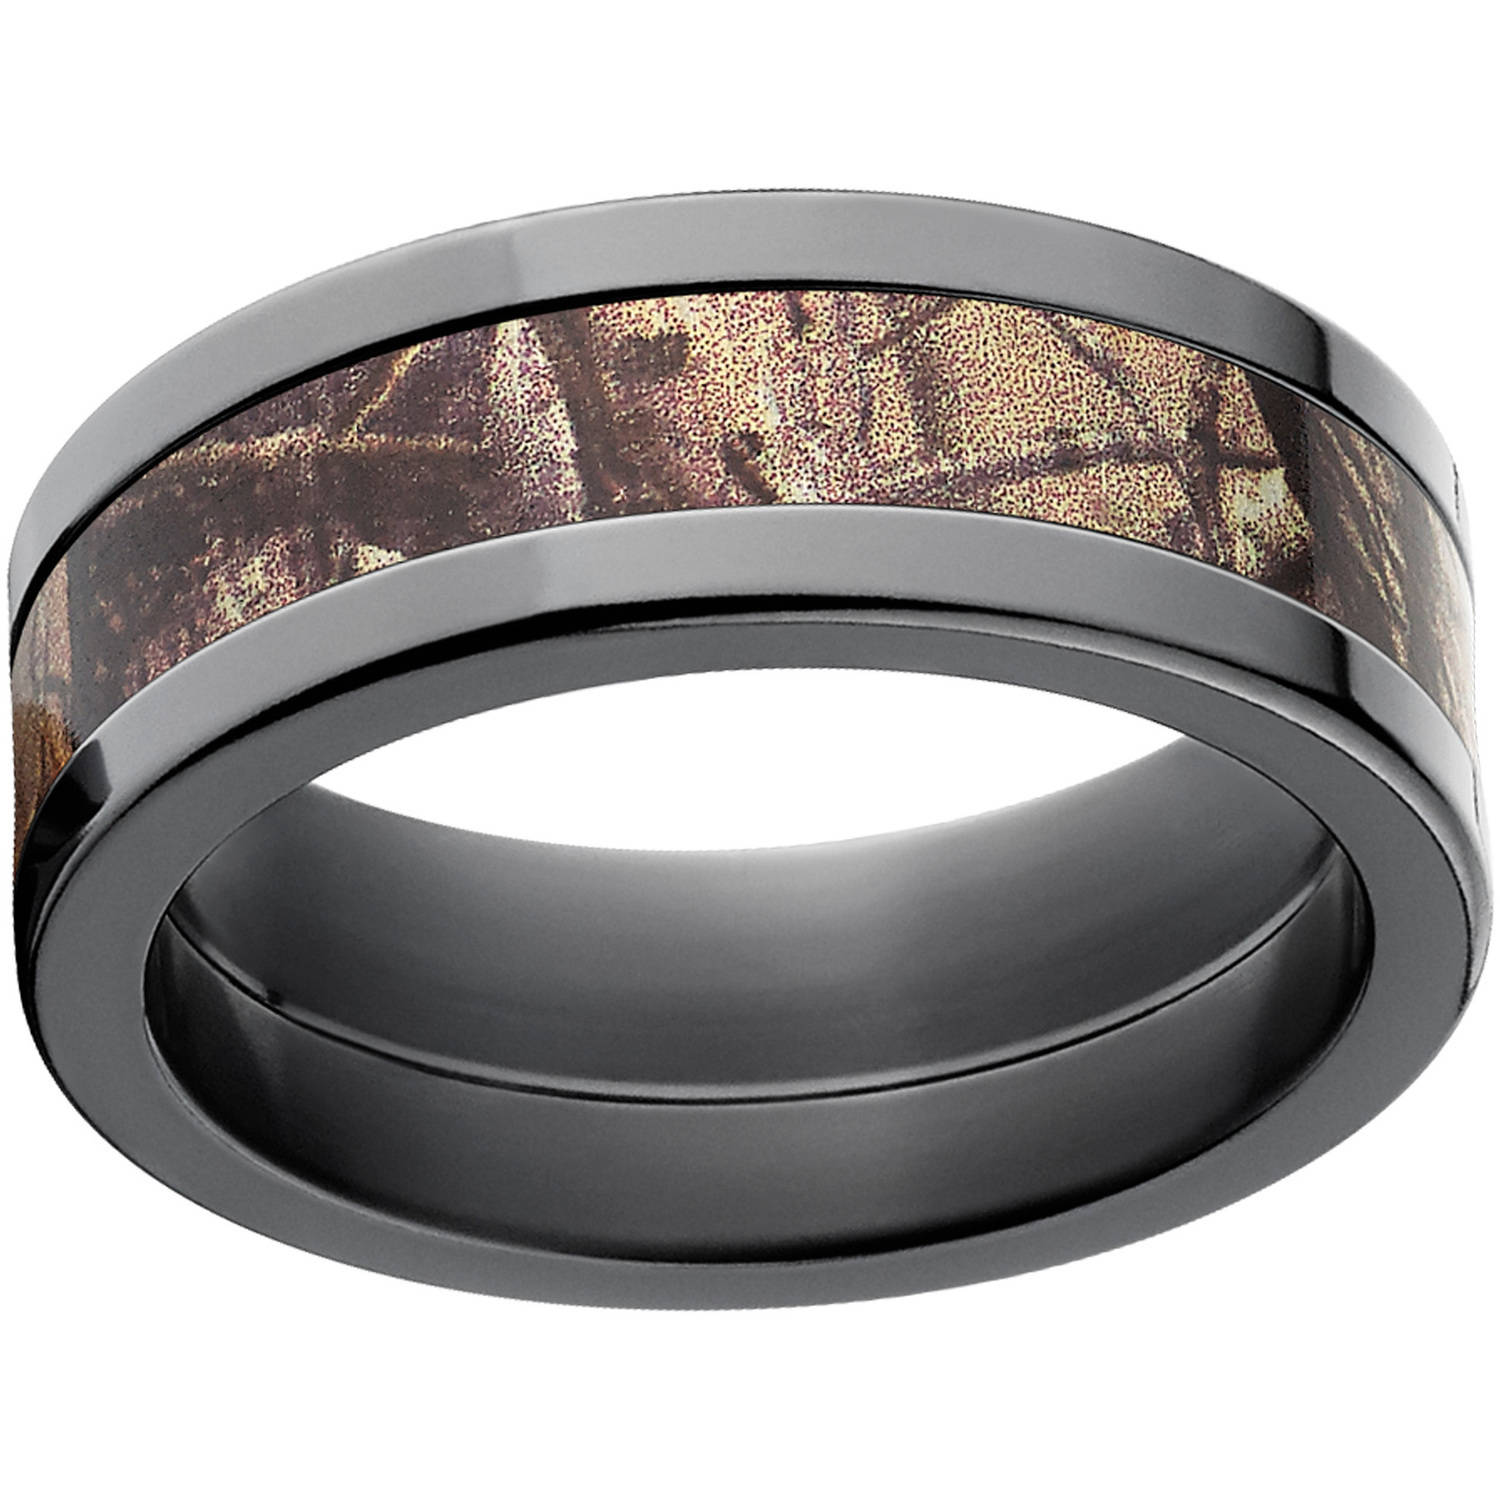 realtree ap men's camo 8mm stainless steel wedding band with